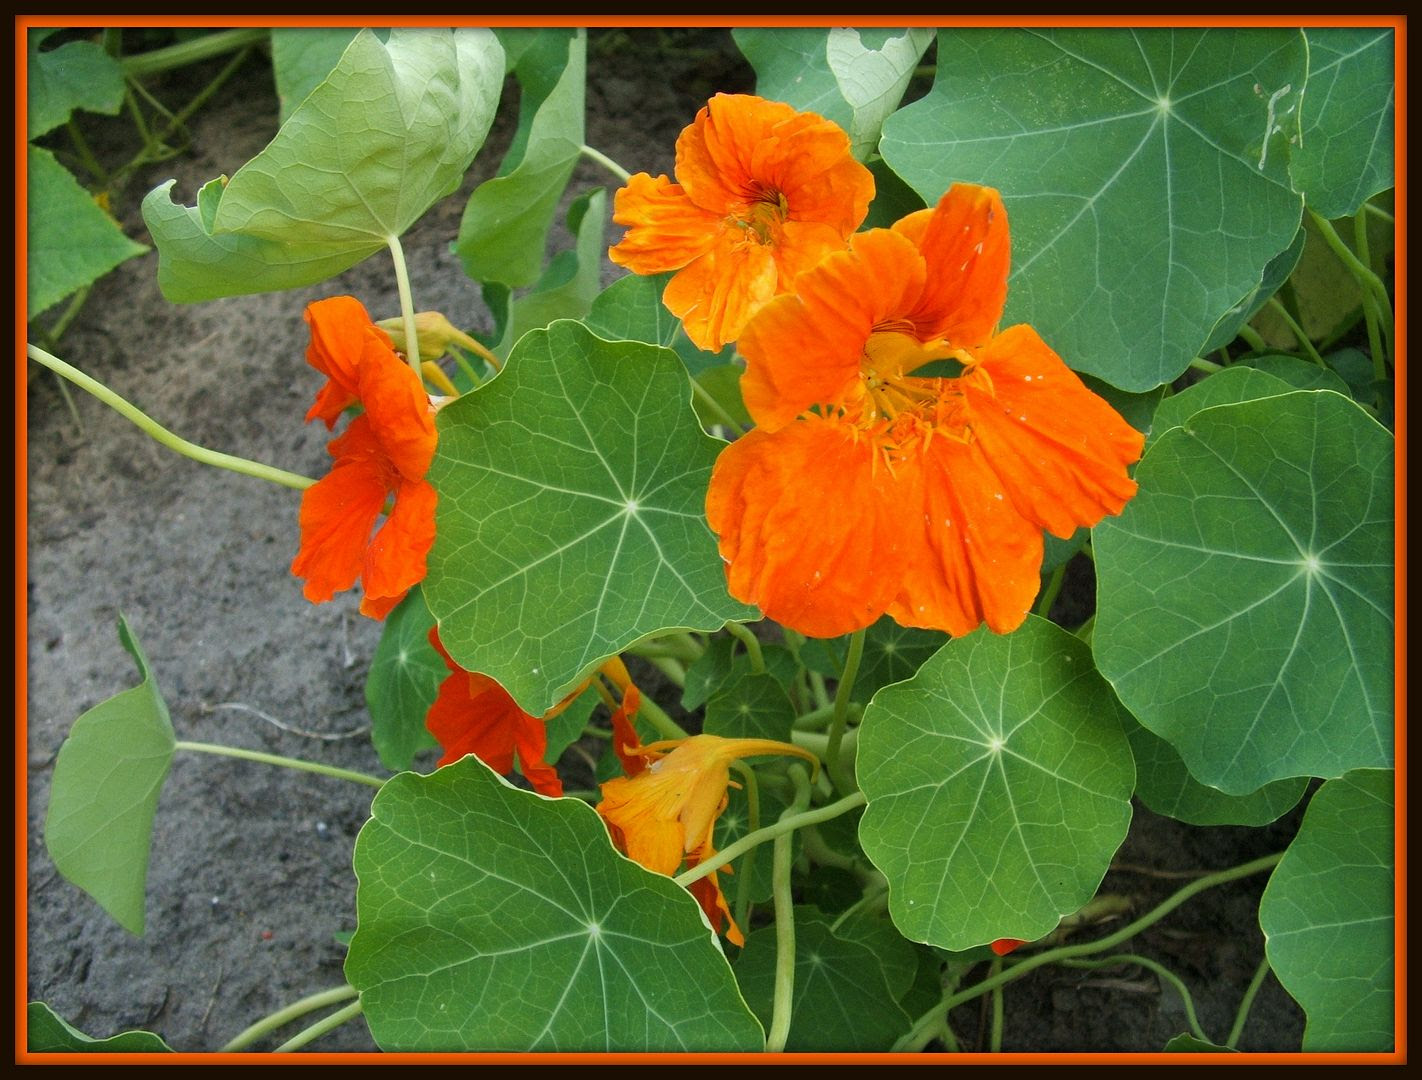 Nasturtiums by Angie Ouellette-Tower for godsgrowinggarden.com photo 018_zpsa1e2e894.jpg